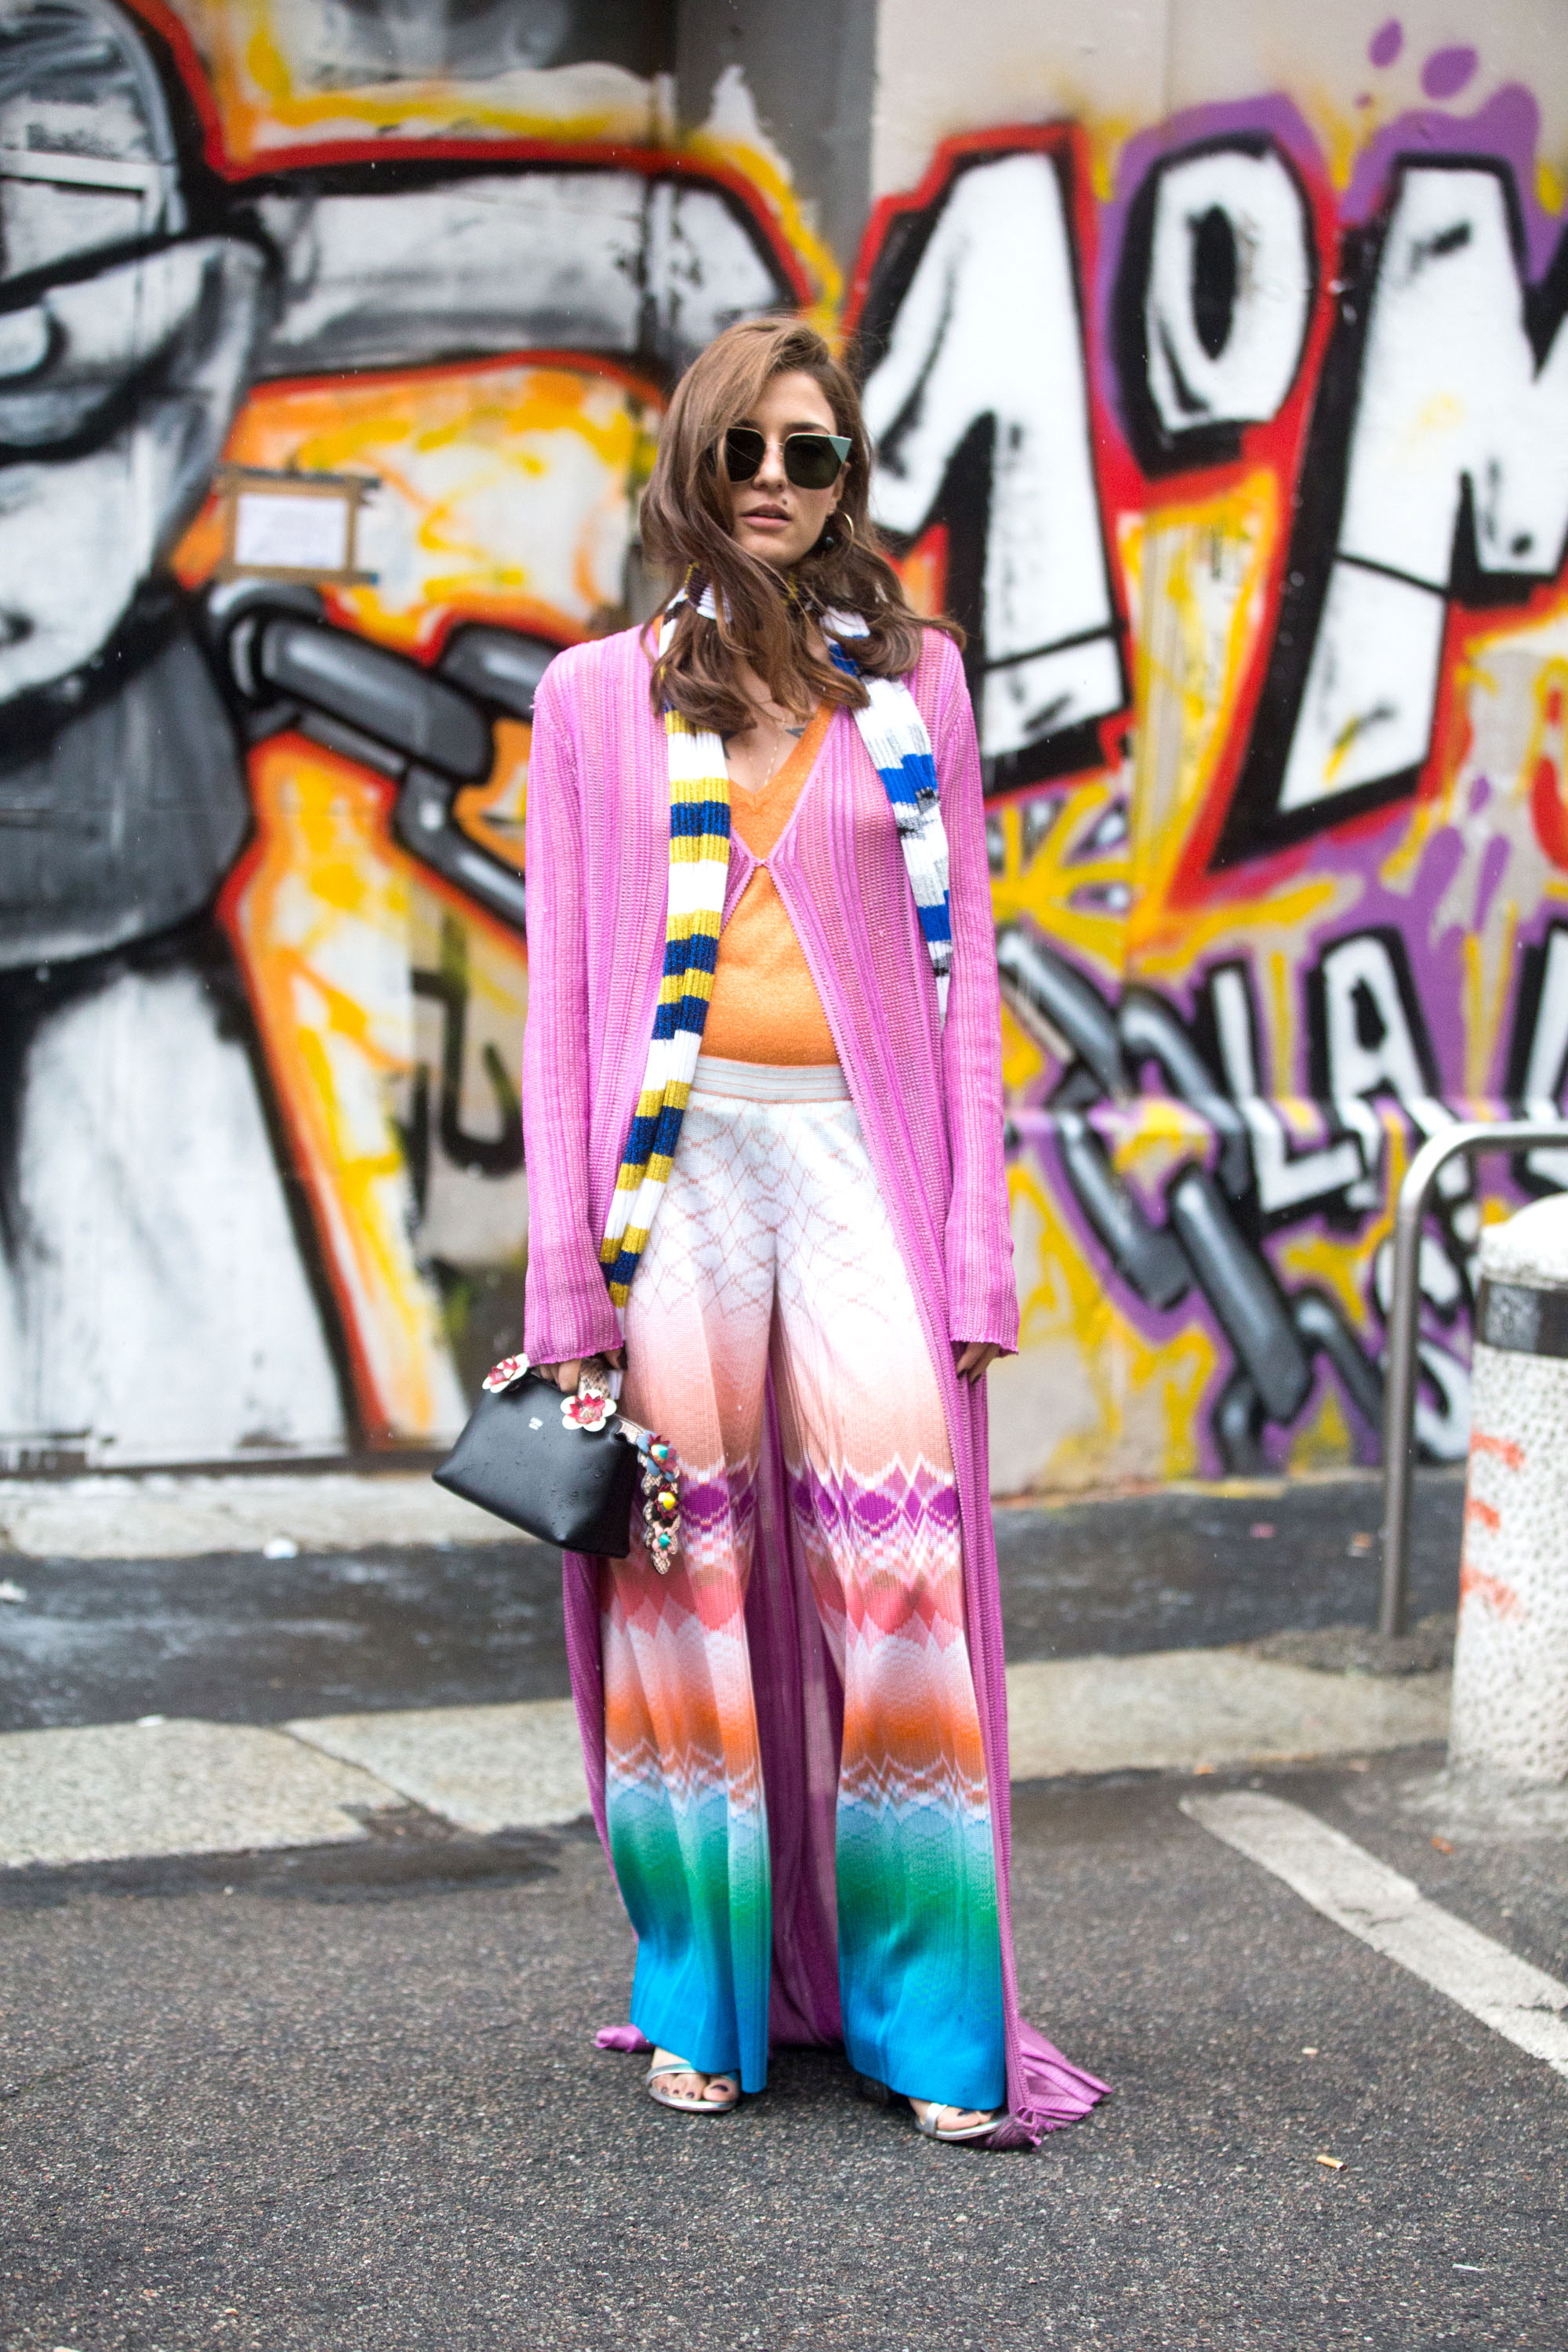 MILAN, ITALY - JUNE 19:  Eleonora Carisi wears Missoni during the Milan Men's Fashion Week Spring/Summer 2017 on June 19, 2016 in Milan, Italy.  (Photo by Melodie Jeng/Getty Images)